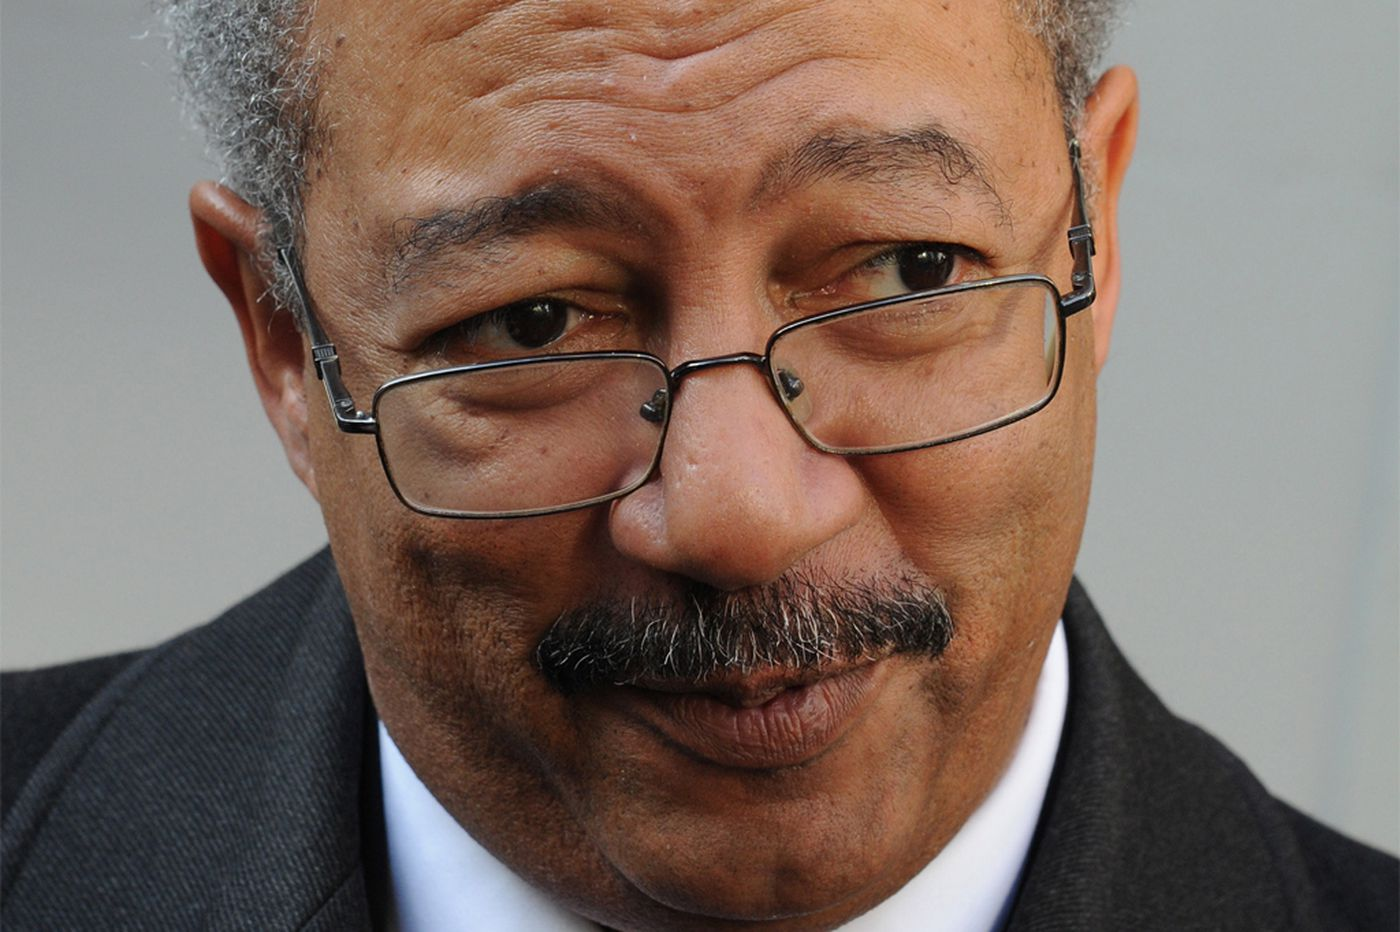 Former Philly congressman Chaka Fattah's attempt to shorten his 10-year corruption sentence was shot down by an appeals court